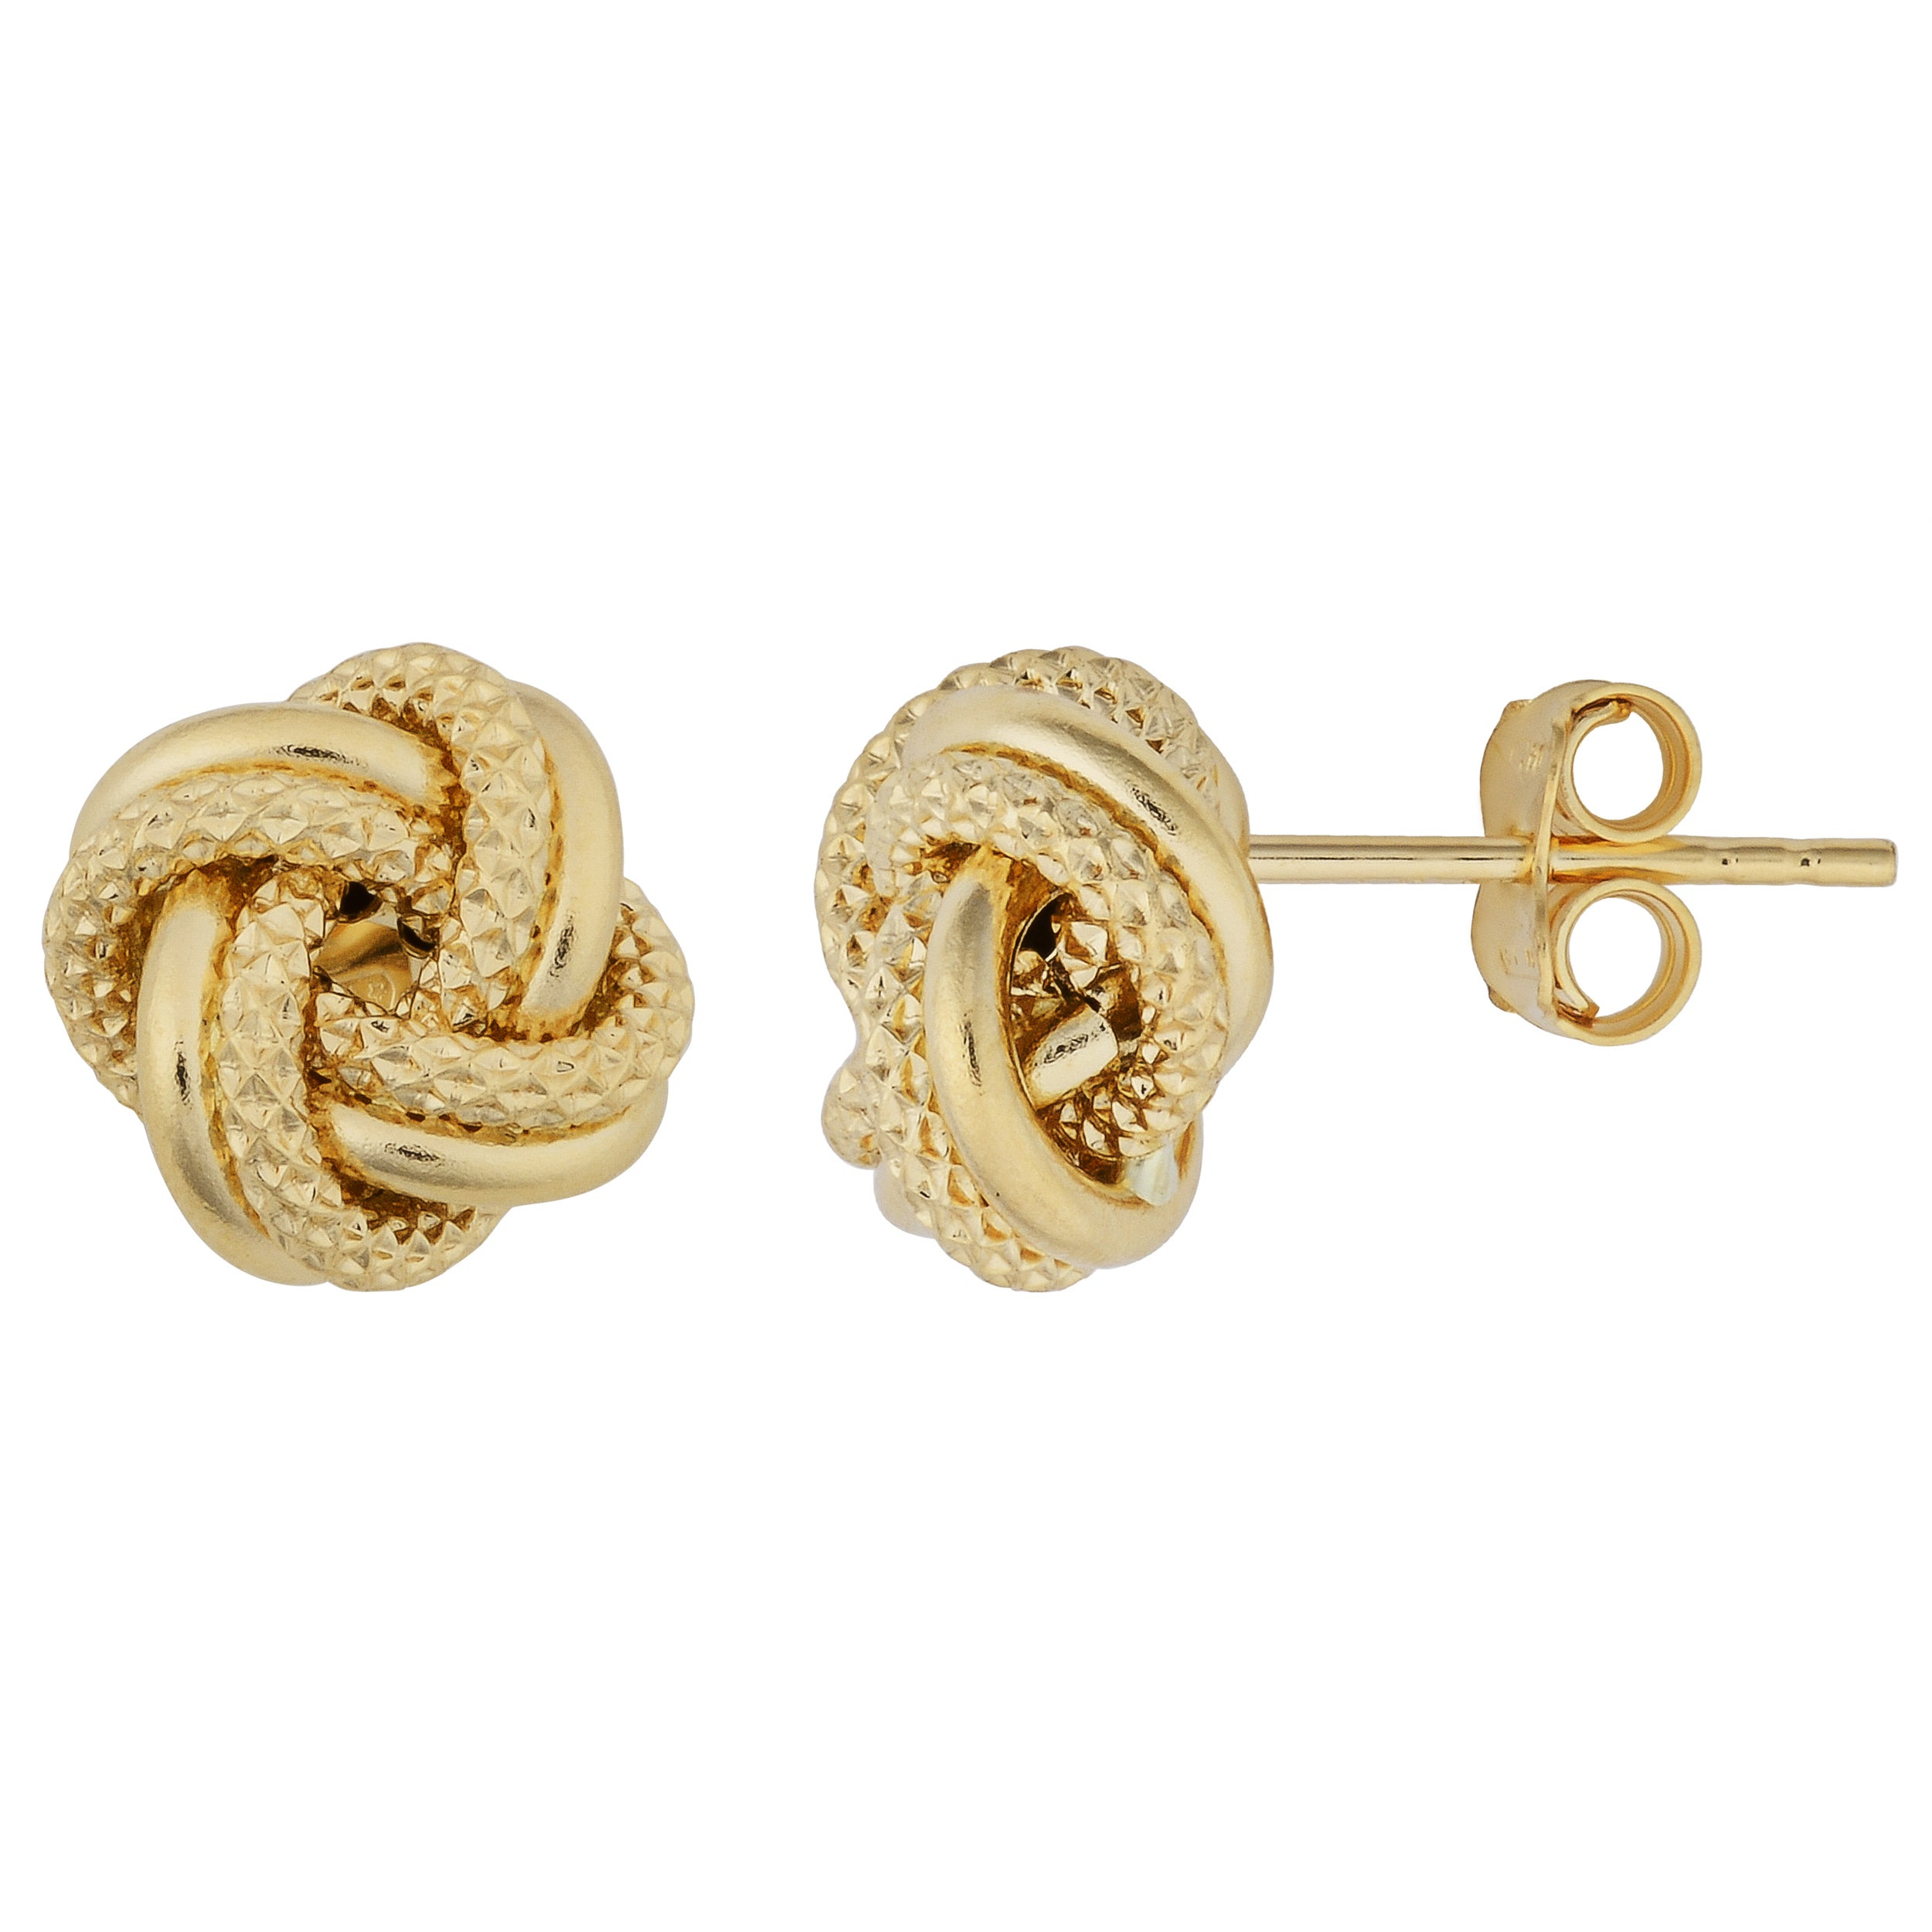 royal italian product gold img earrings trading index